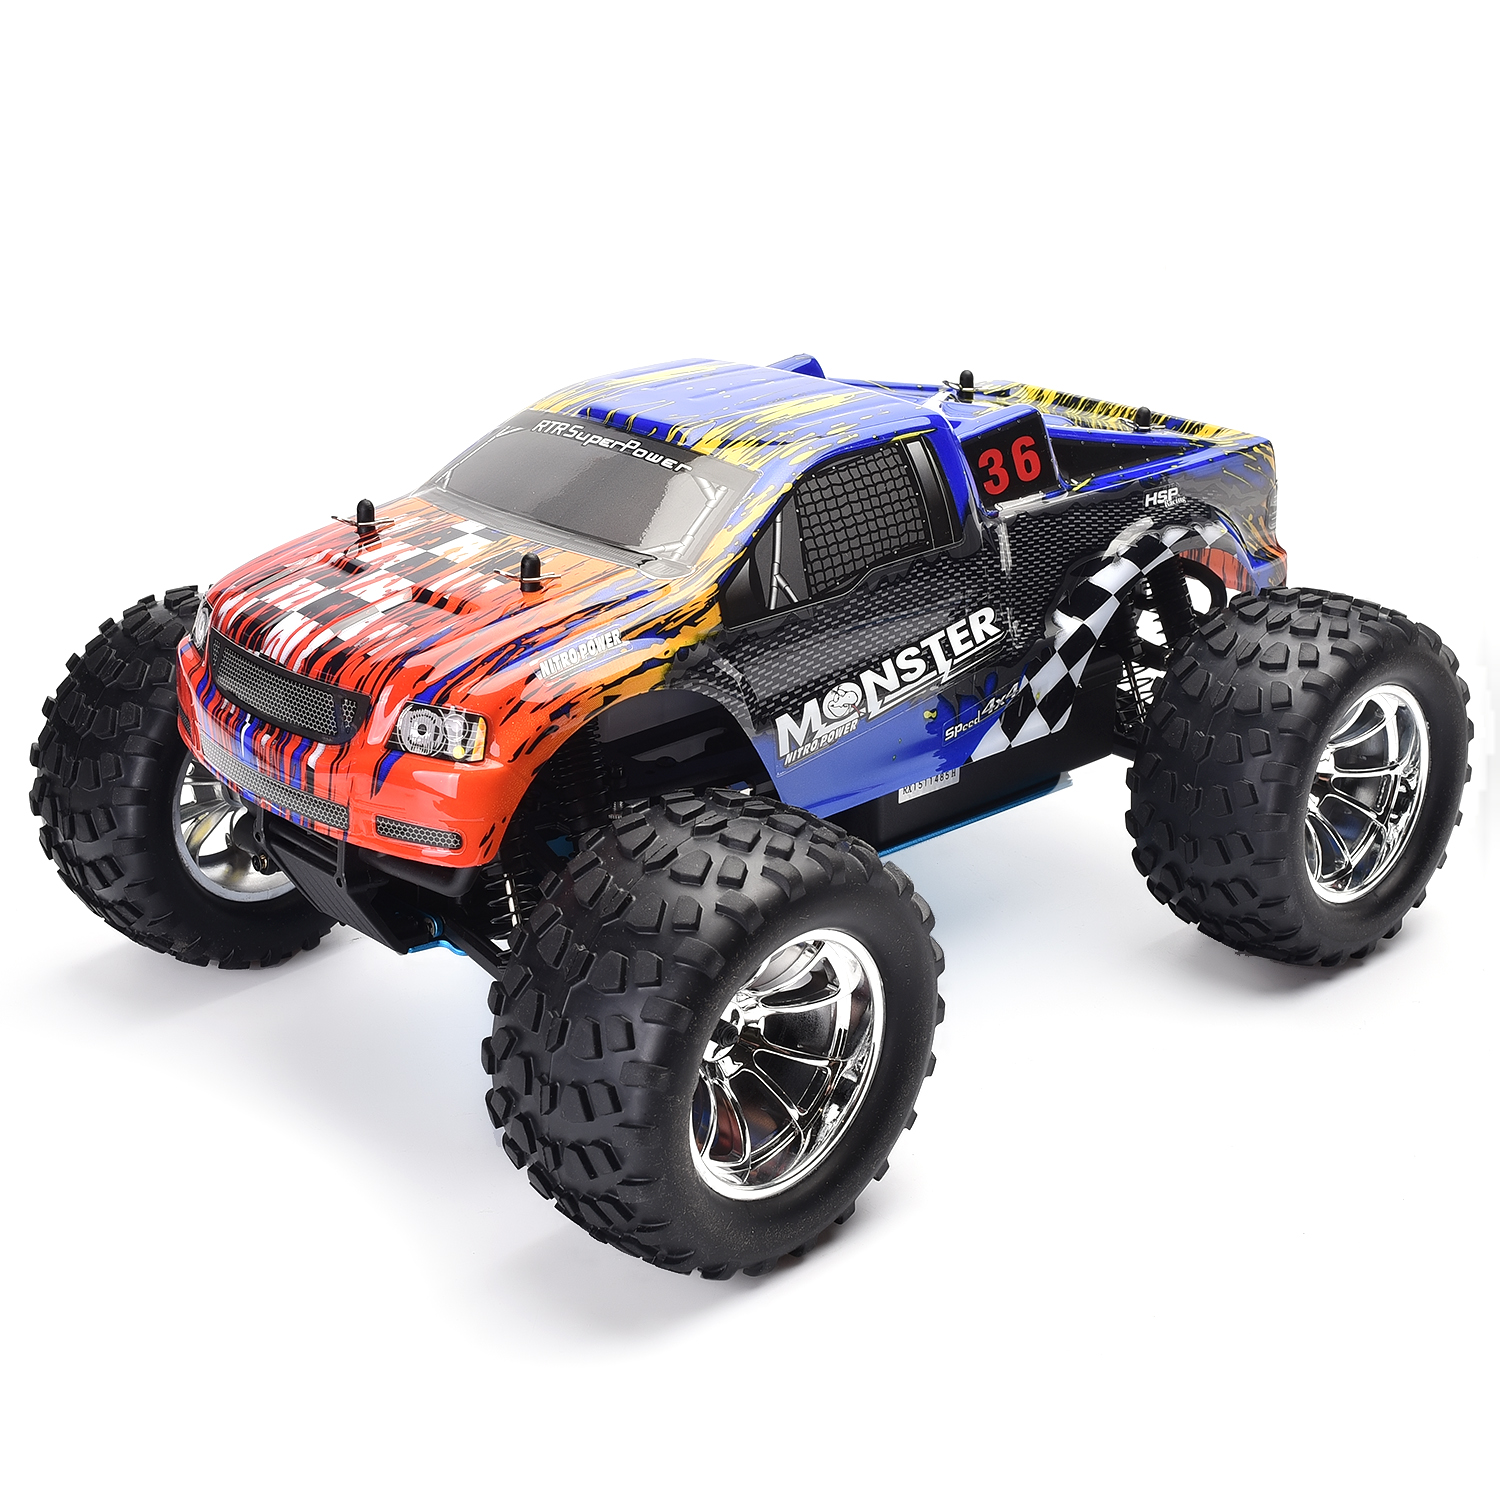 Hsp Rc Truck Nitro Gas Power Off Road Monster Truck 94188: HSP 1/10 Scale Rc Truck Models Nitro Gas Power Off Road